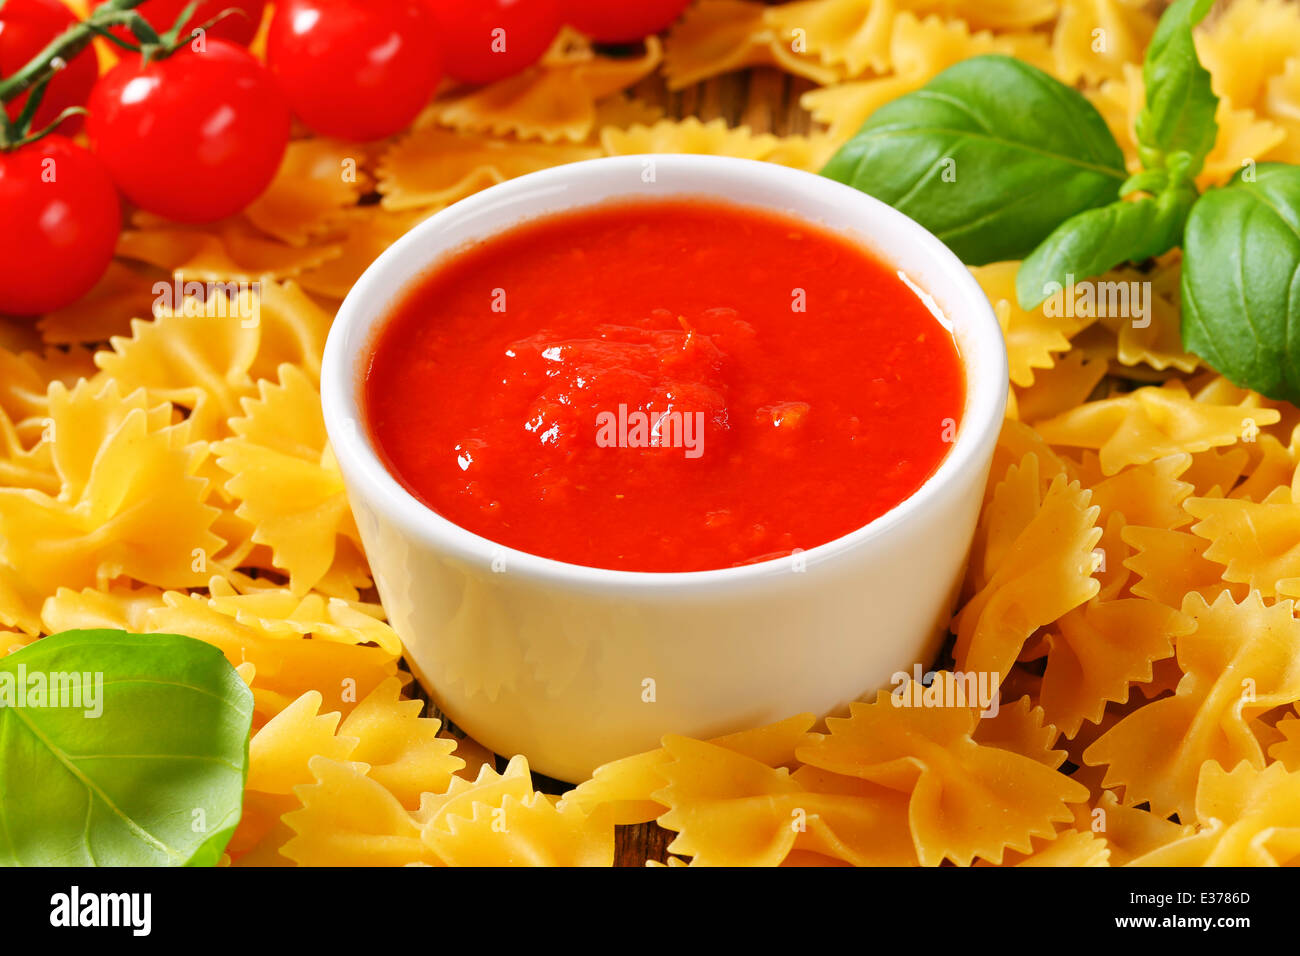 Uncooked bow tie pasta and tomato puree - Stock Image